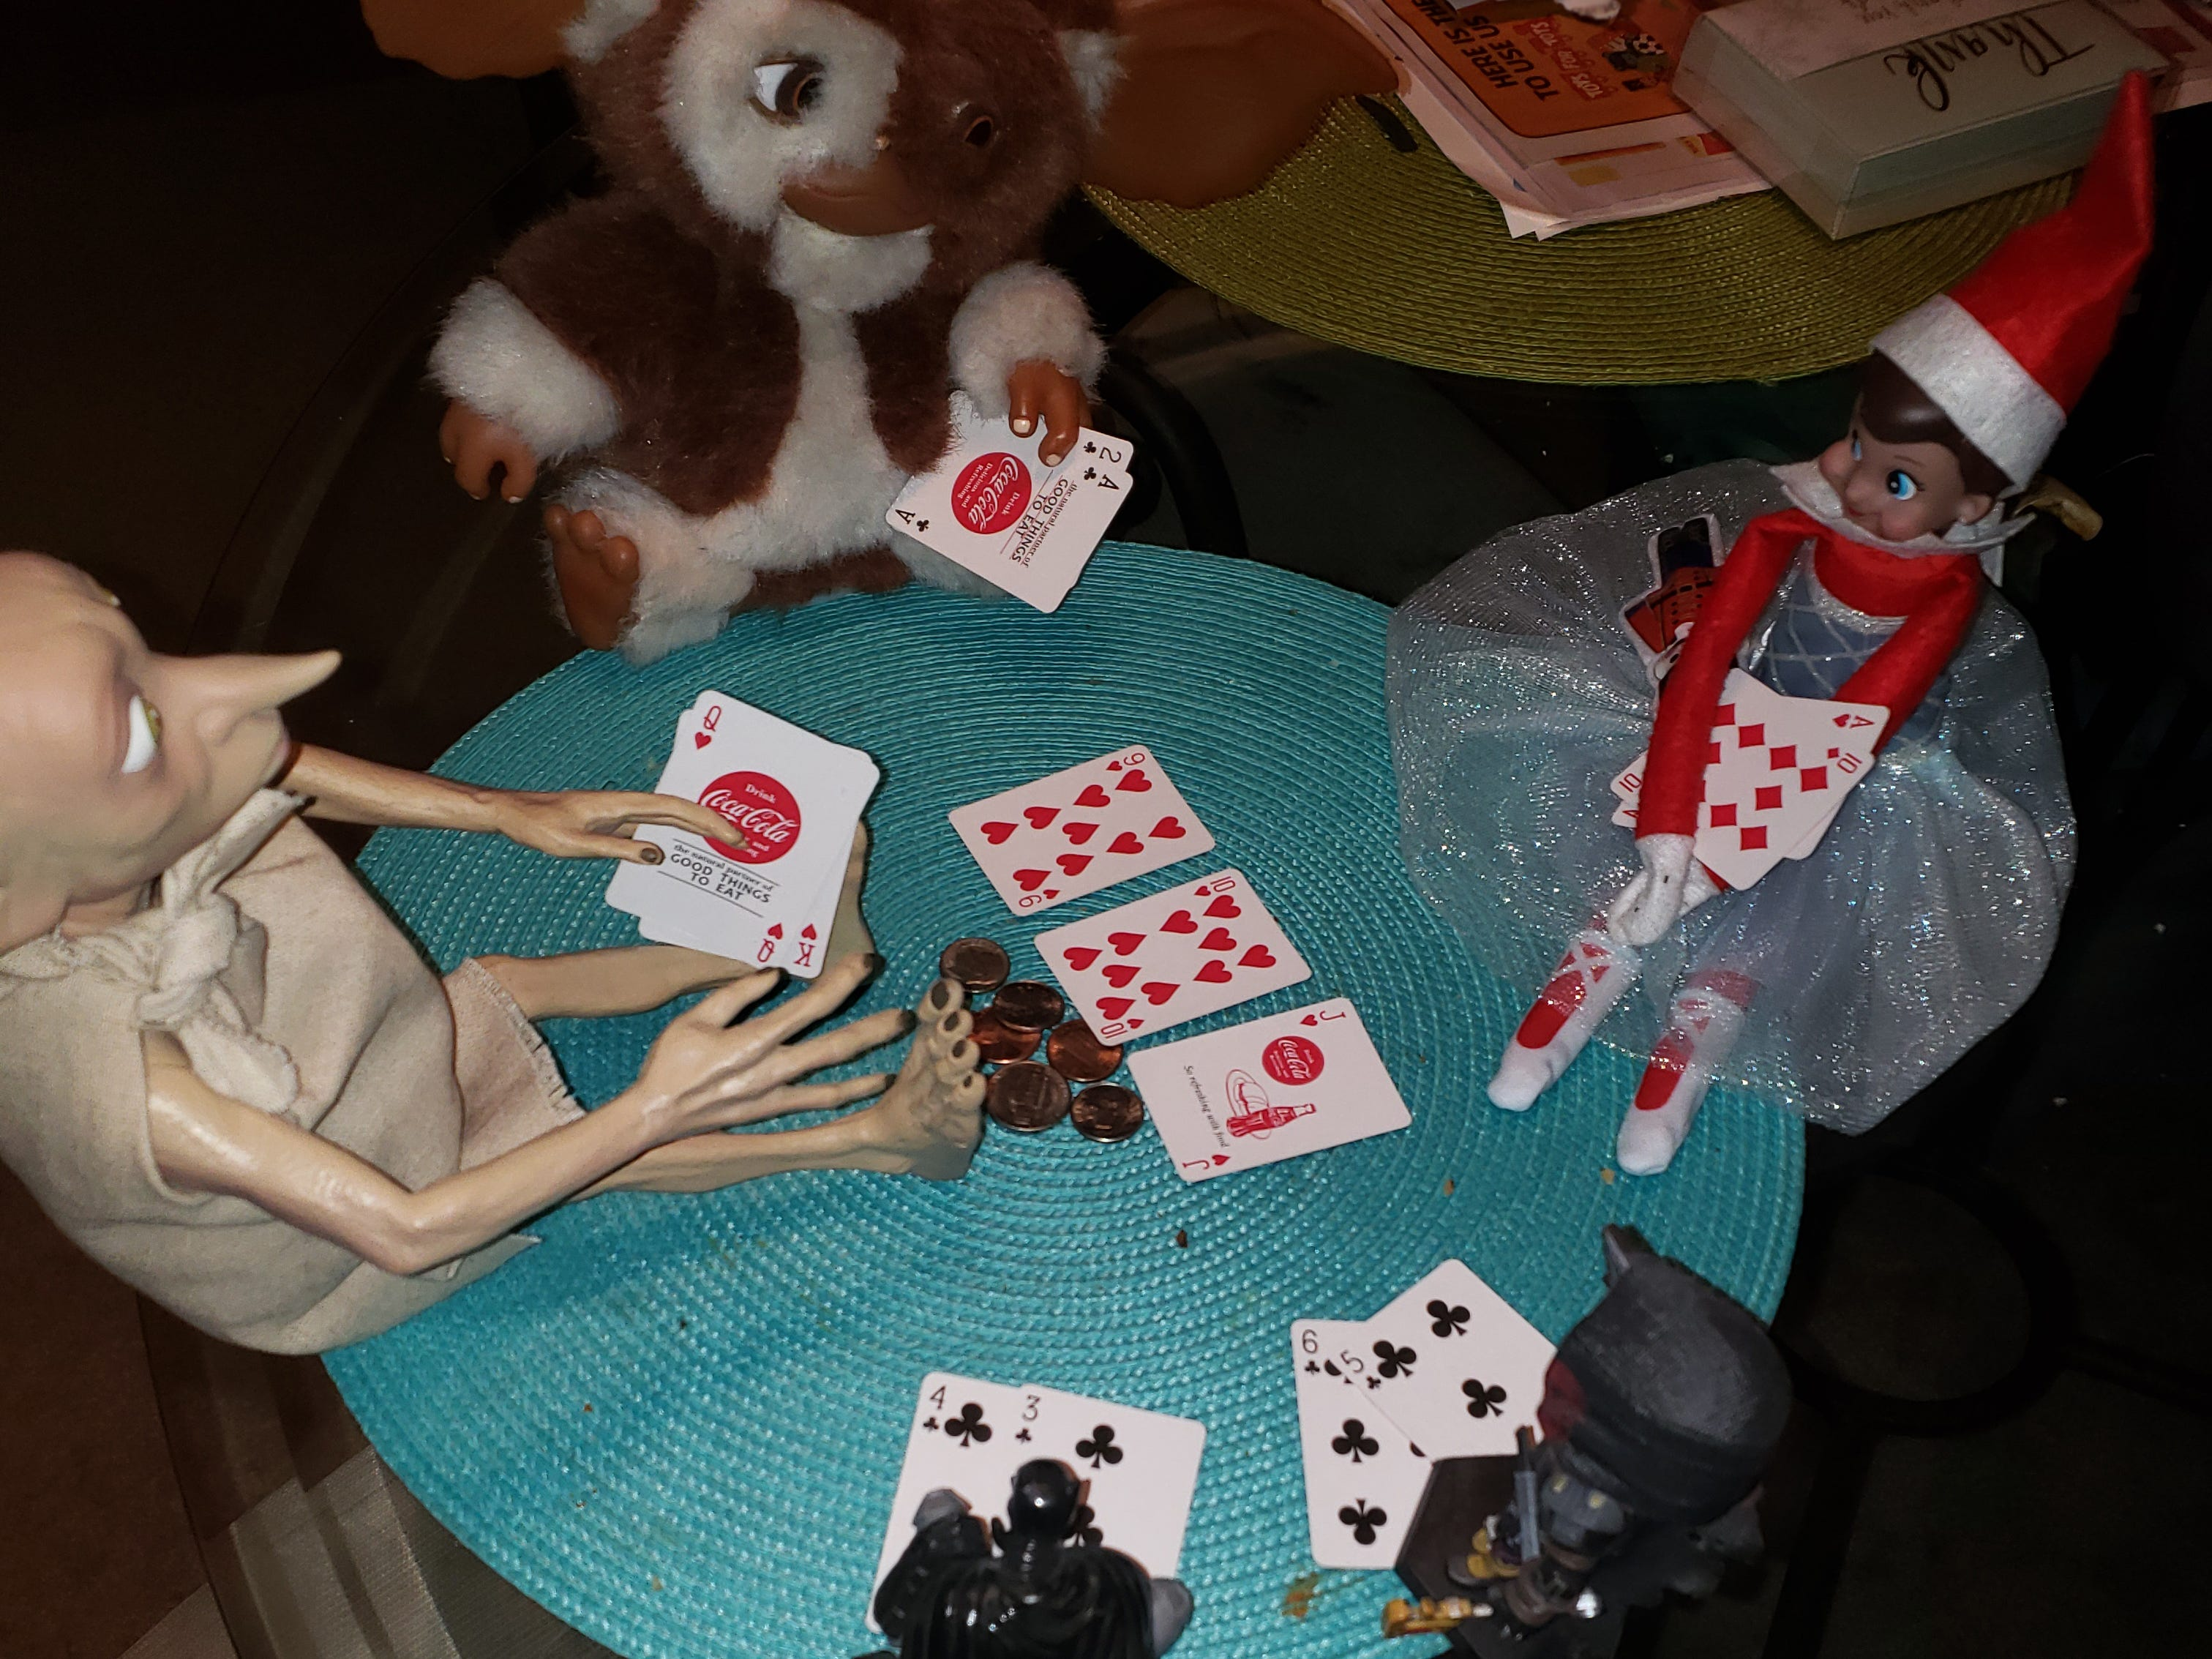 Snowflake the elf is playing poker with her friends.